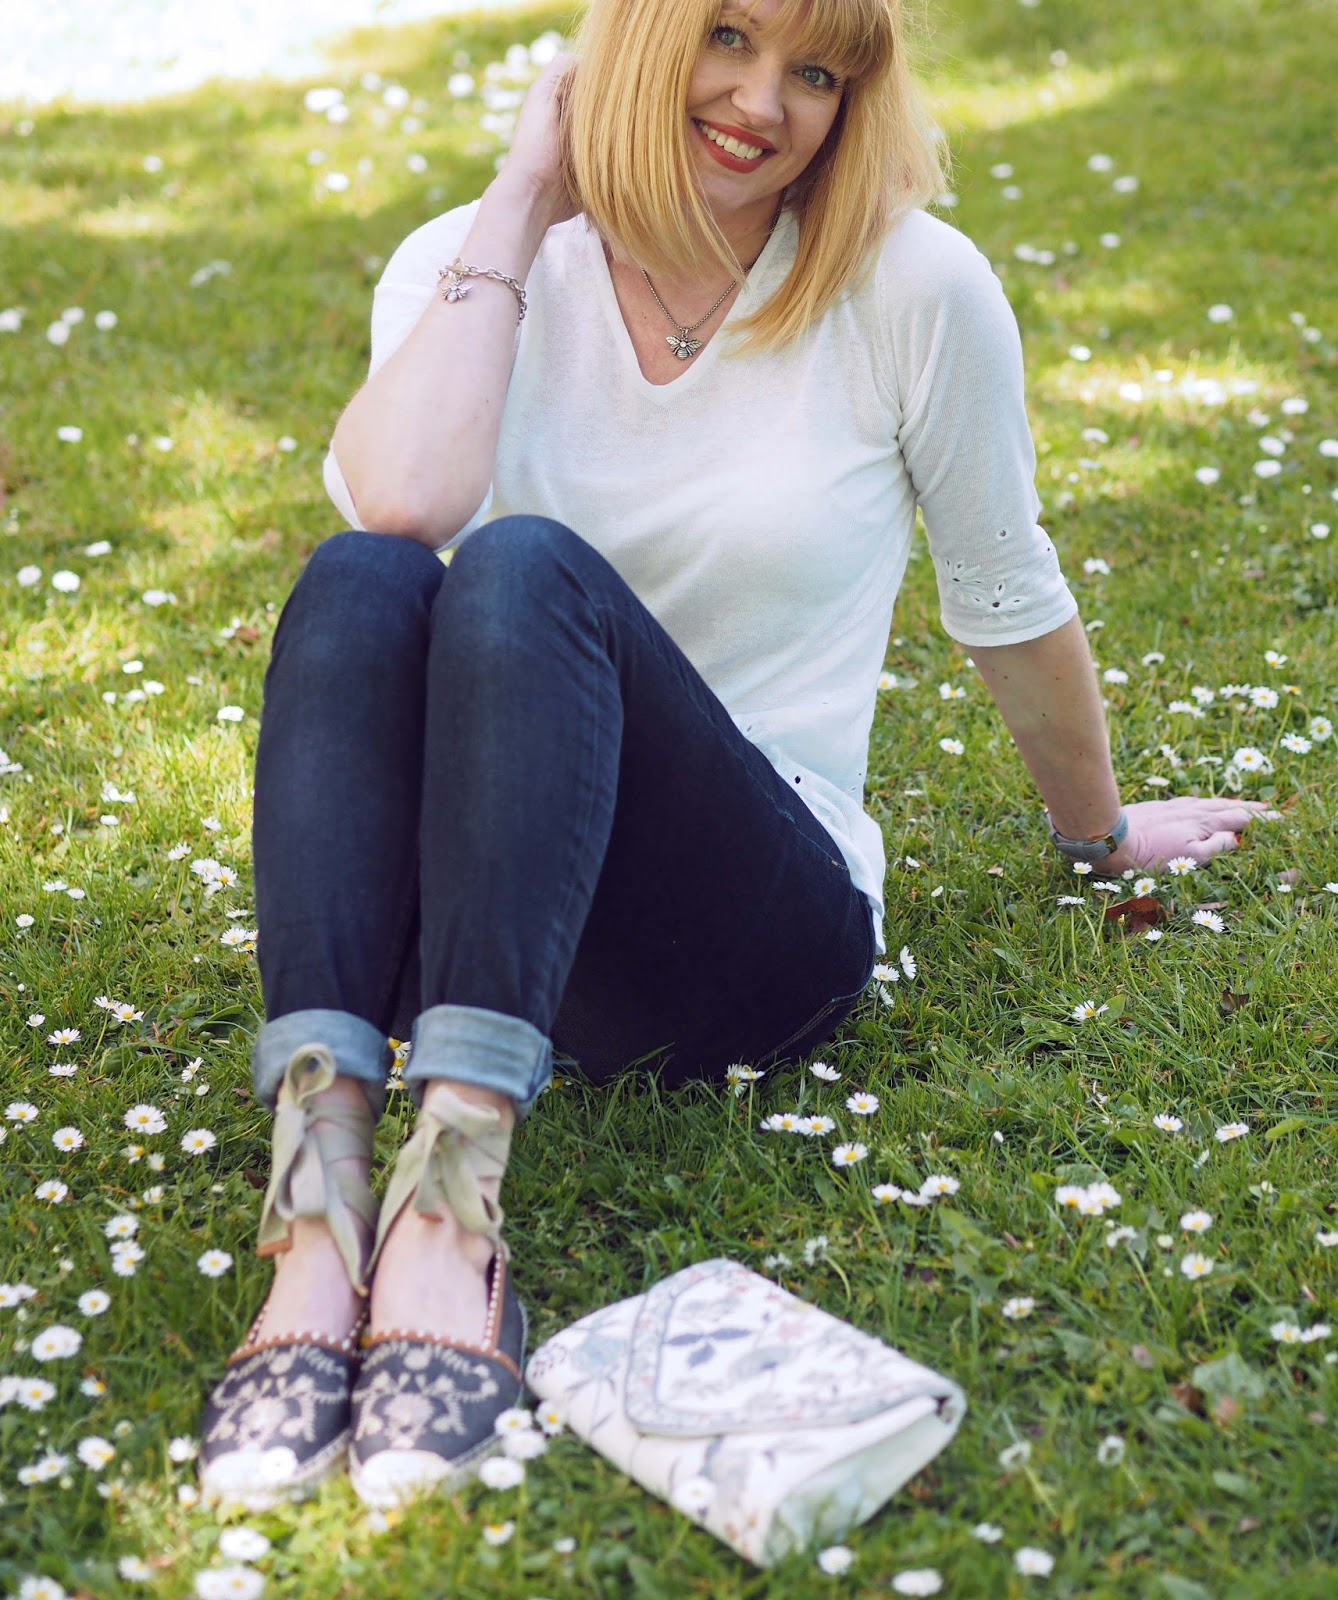 What-Lizzy-Loves-white-daisy-embroidered-linen-top-skinny-jeans-flower-embroidered-tie-espadrilles-clutch-bag